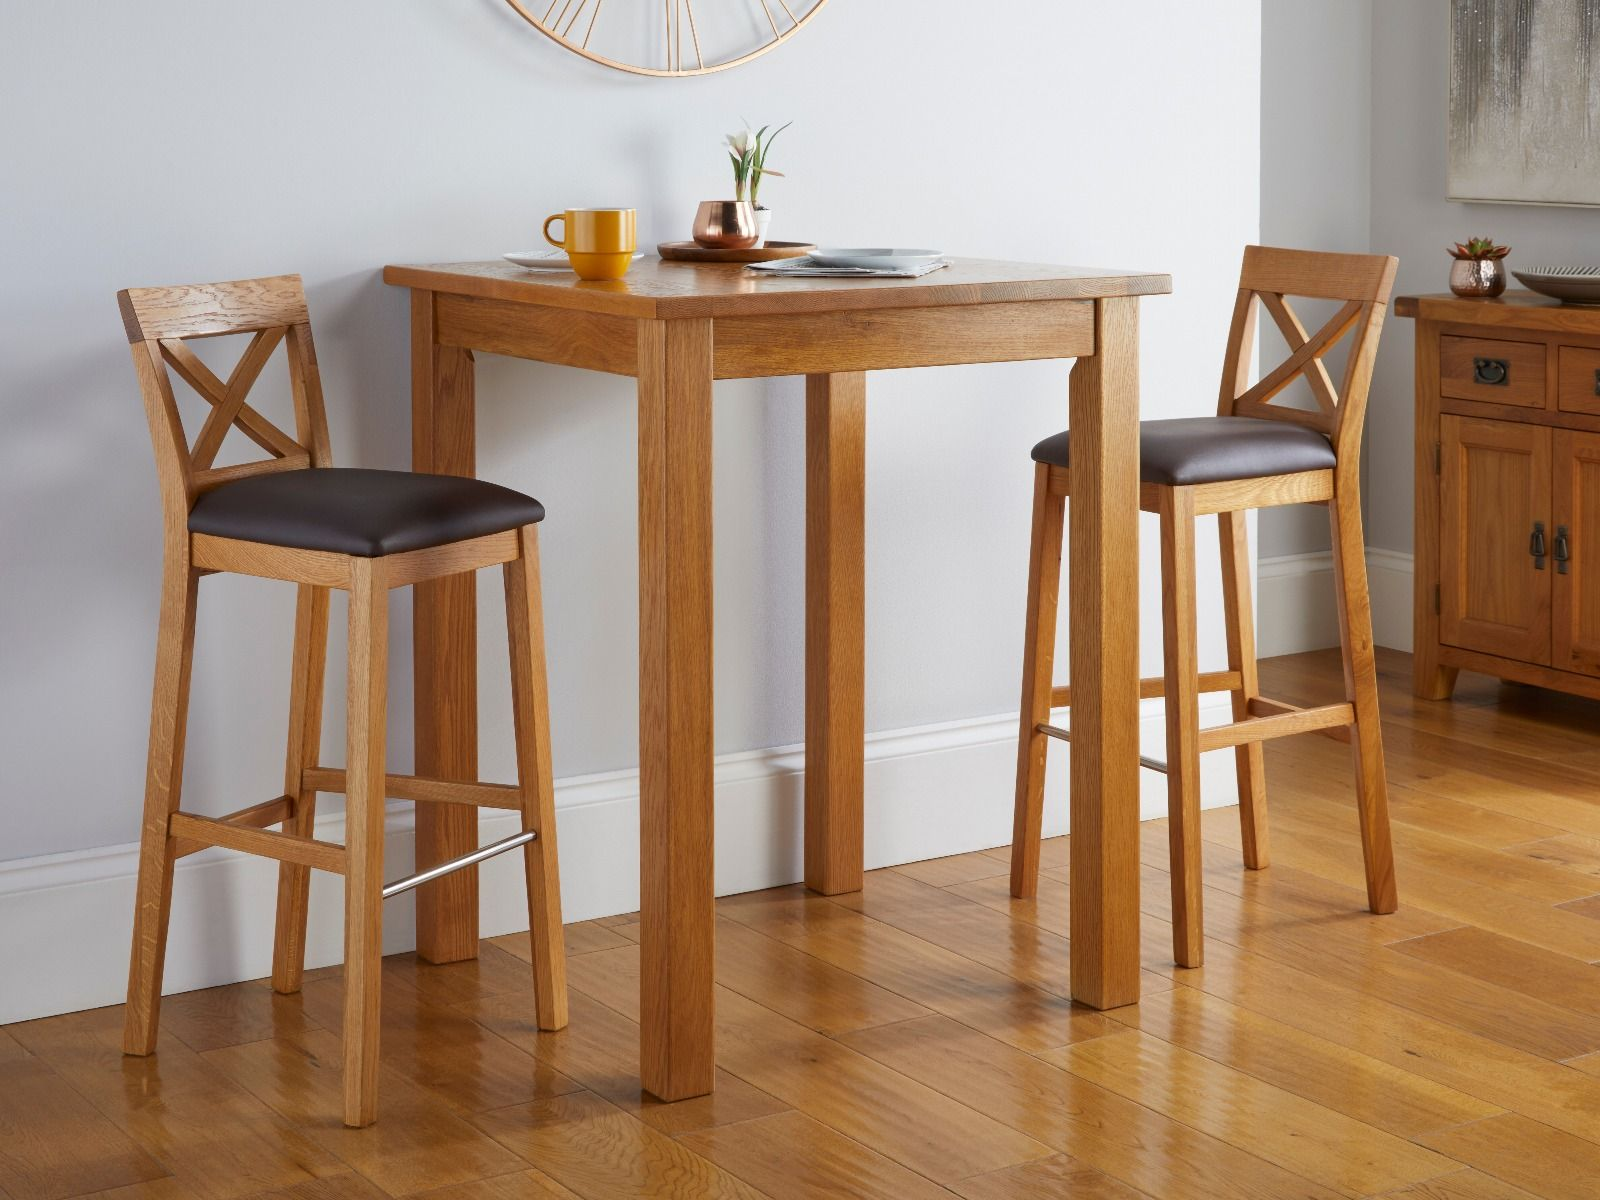 Picture of: Country Oak Tall Breakfast Bar Table 80cm Square